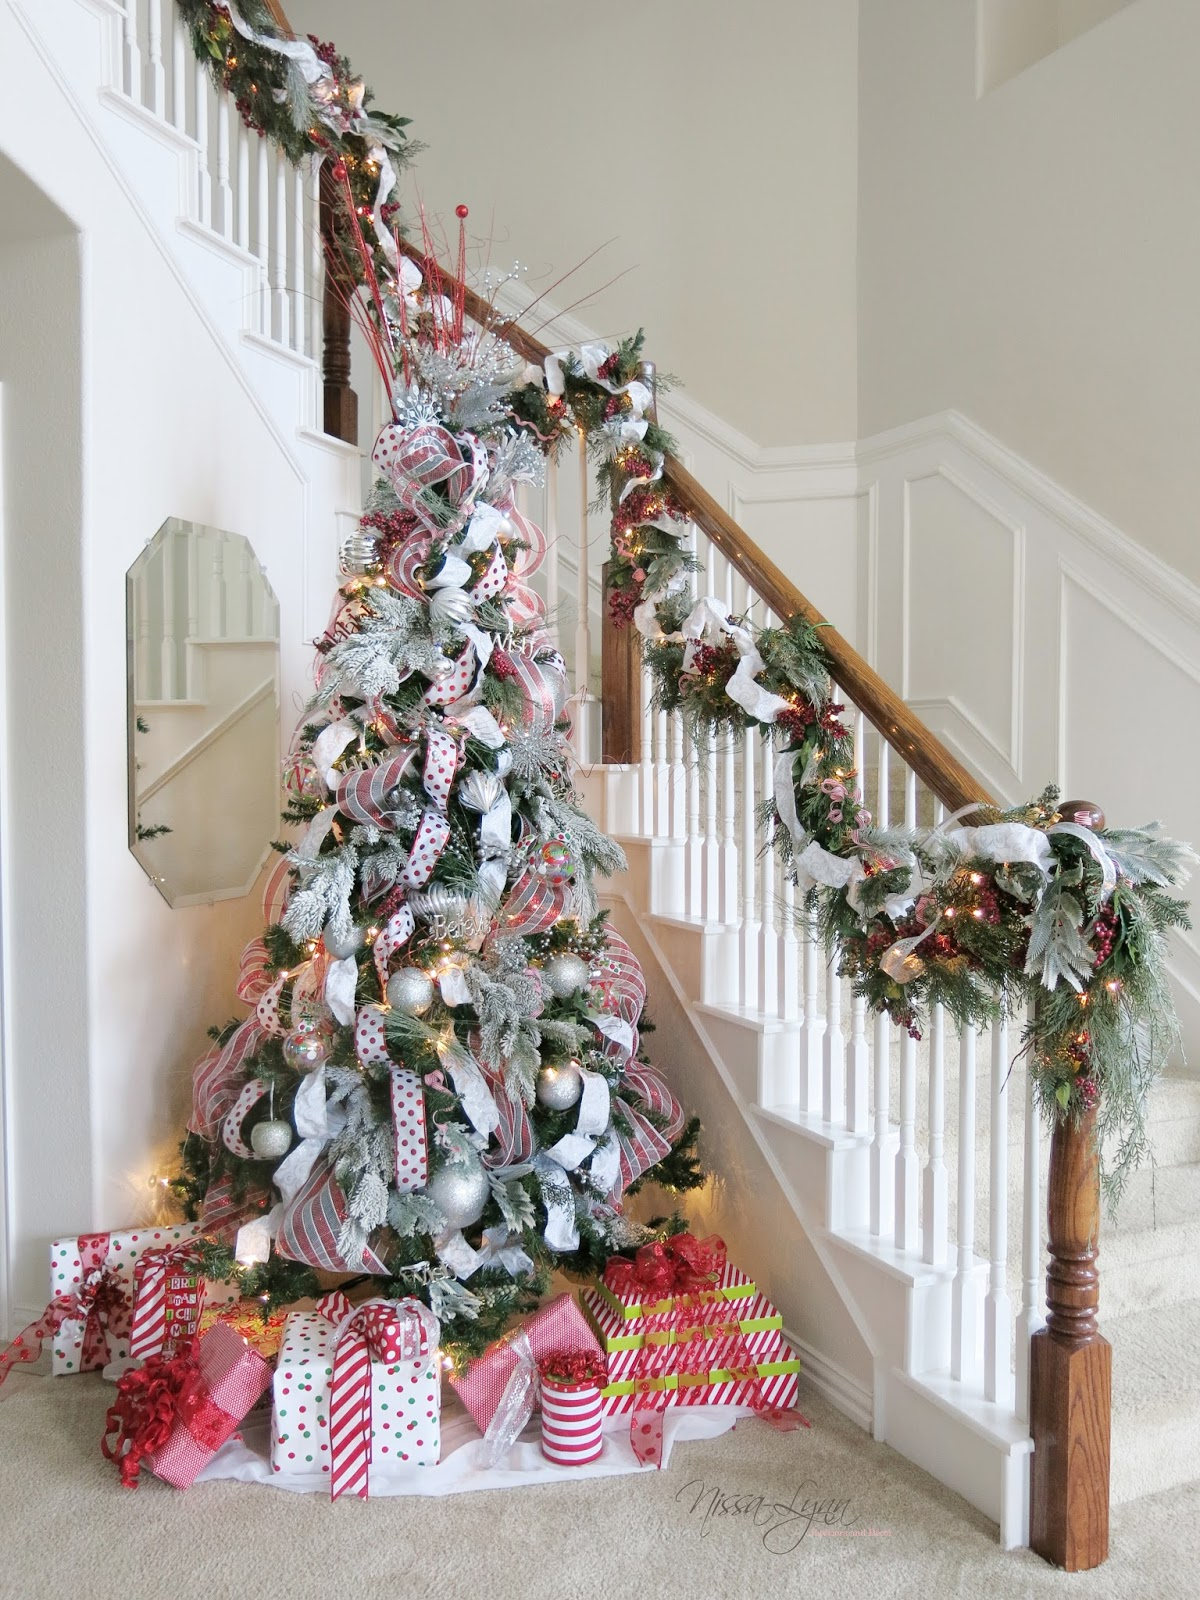 Nissa-Lynn Interiors: Making an Old Christmas Tree New Again!